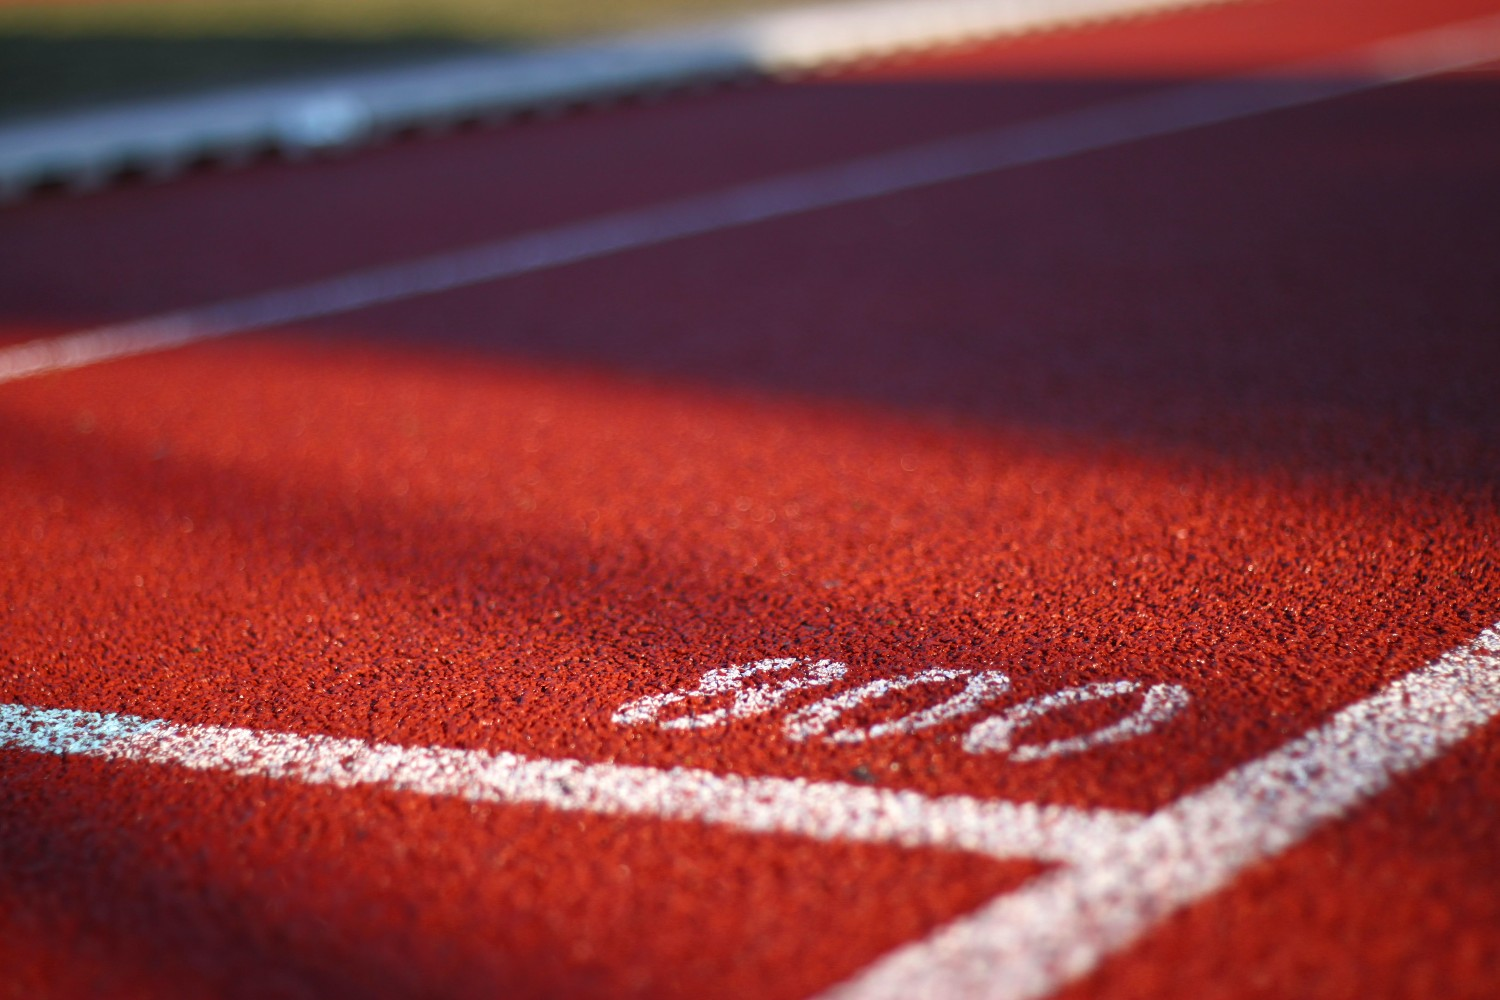 800 metre mark on a running track